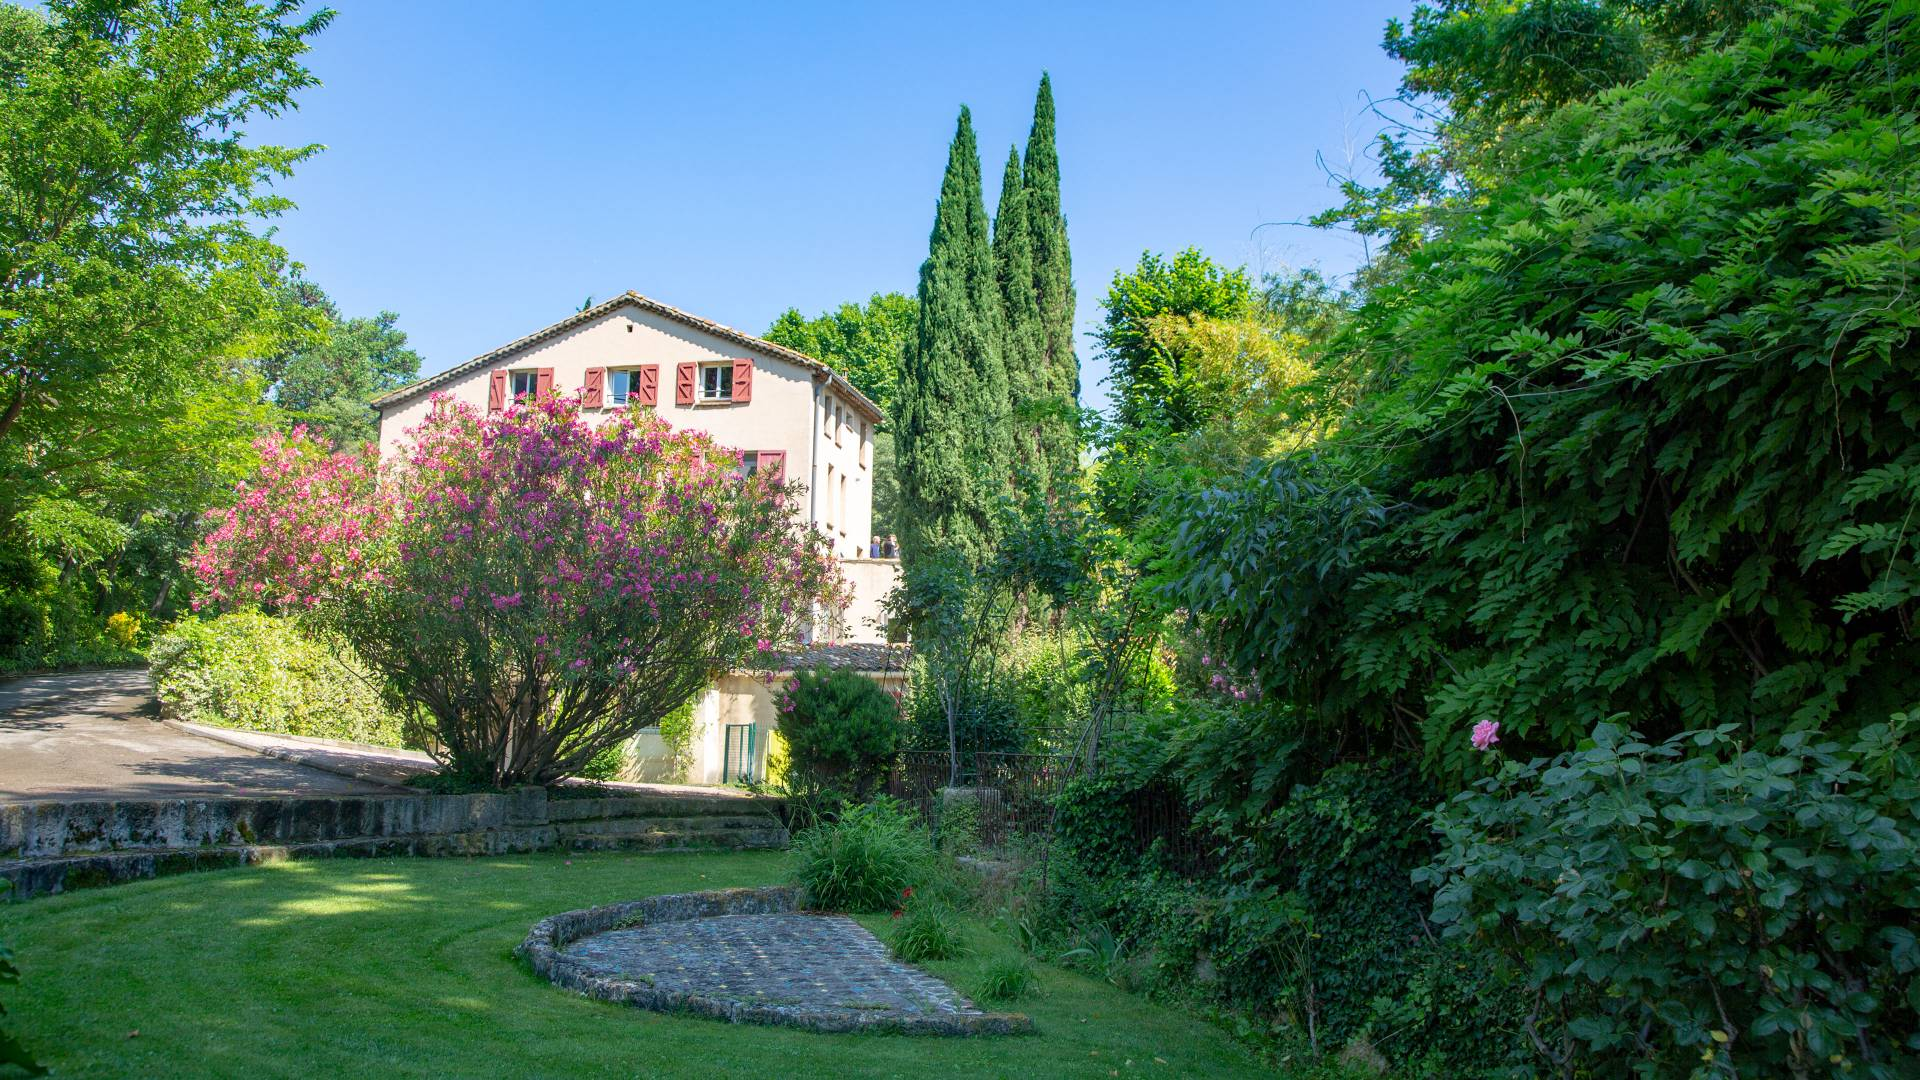 Grounds and house at Aix-en-Provence language institute in France